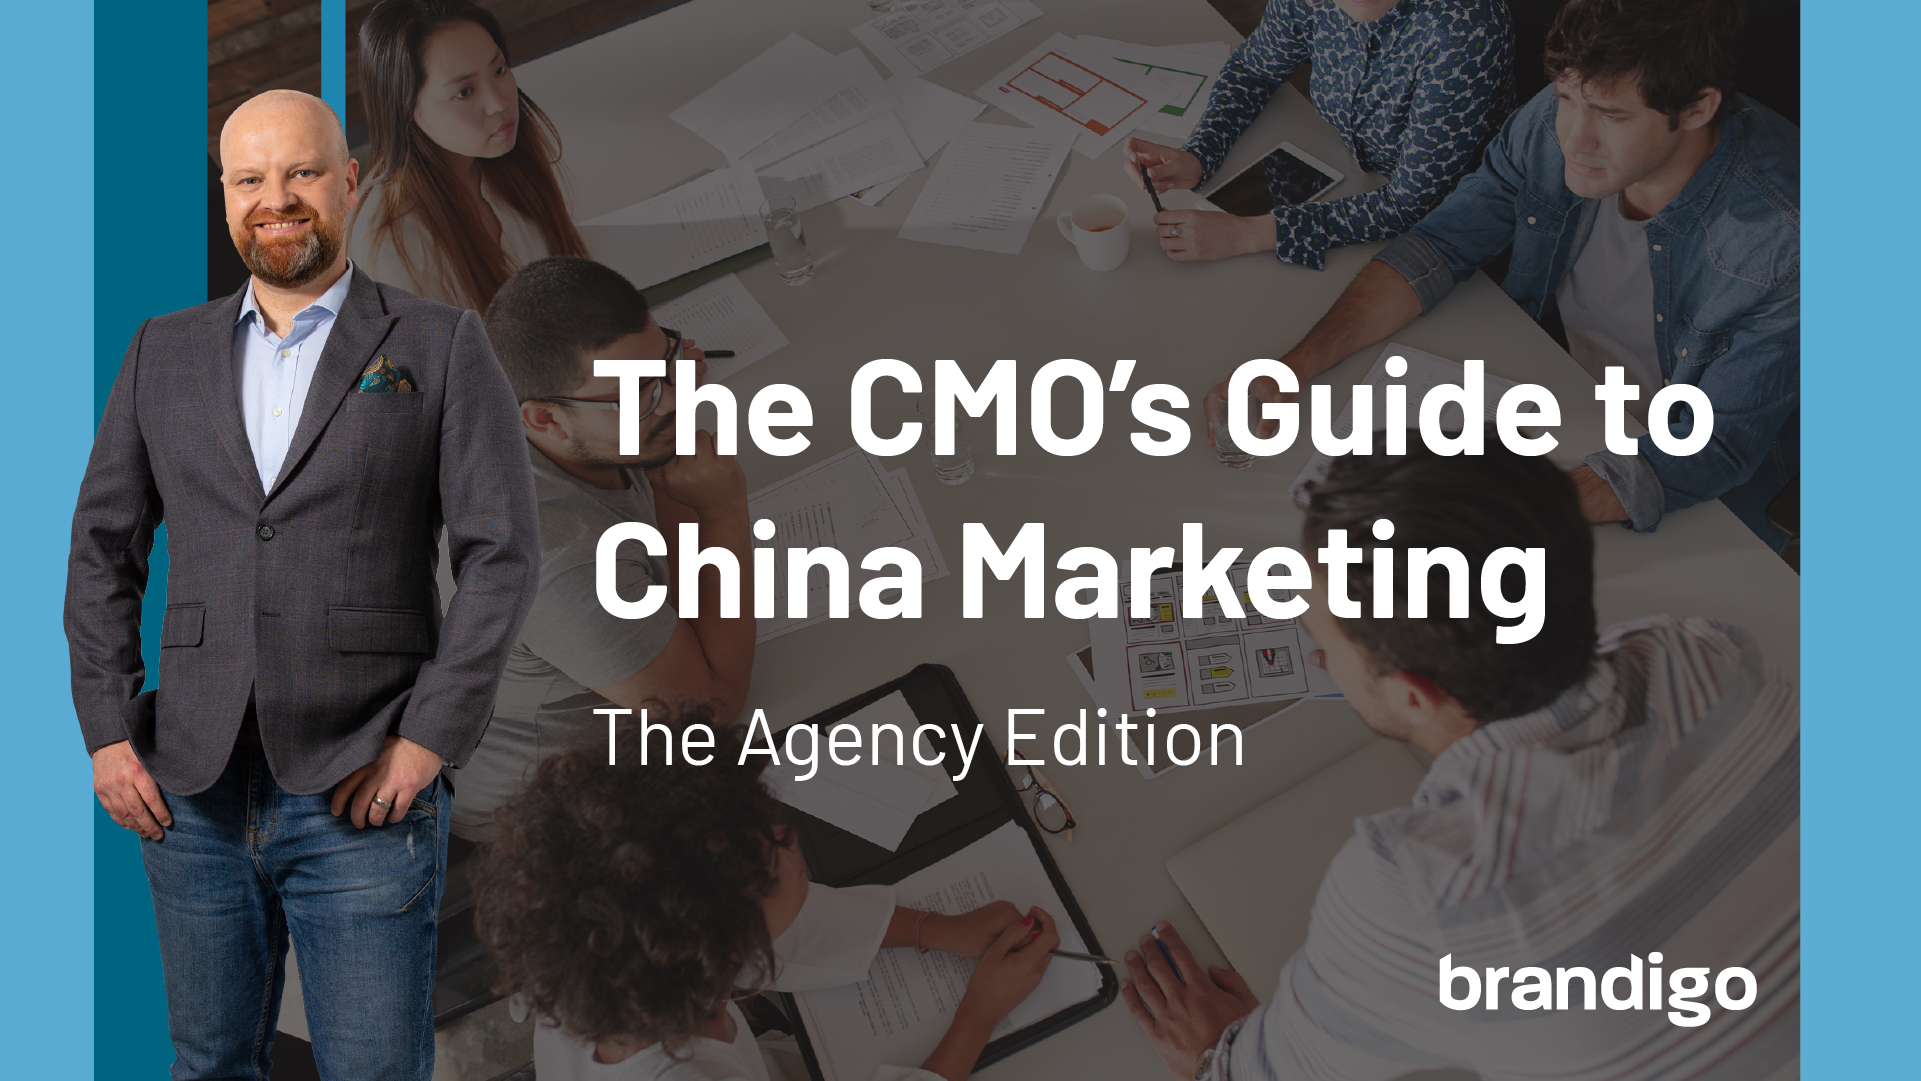 CMOs Guide to China Marketing Agency Edition